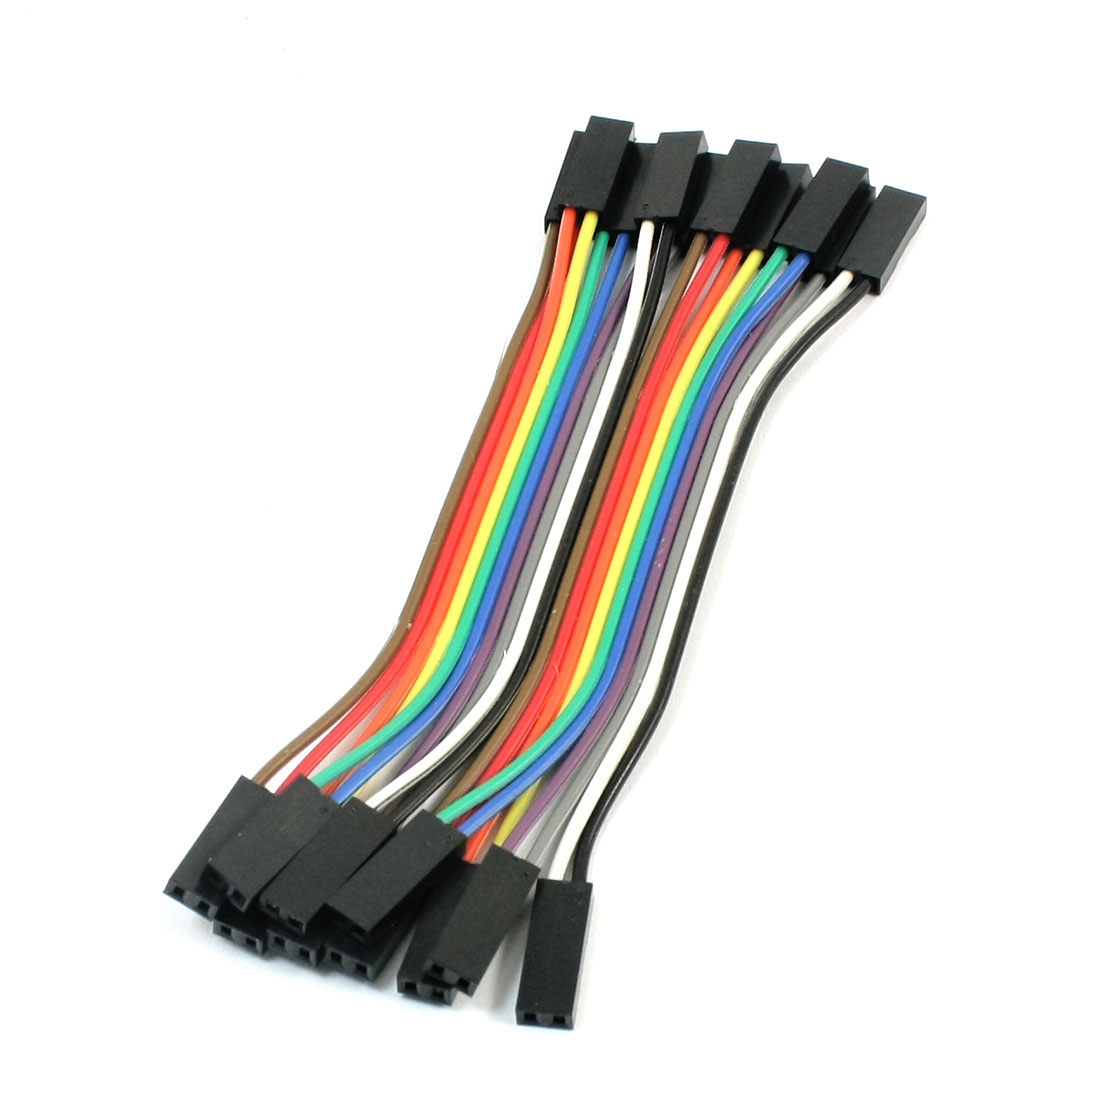 10pcs 10cm 2.54mm 2P-2P Female to Female F/F Connect Jumper Wire Cable Line